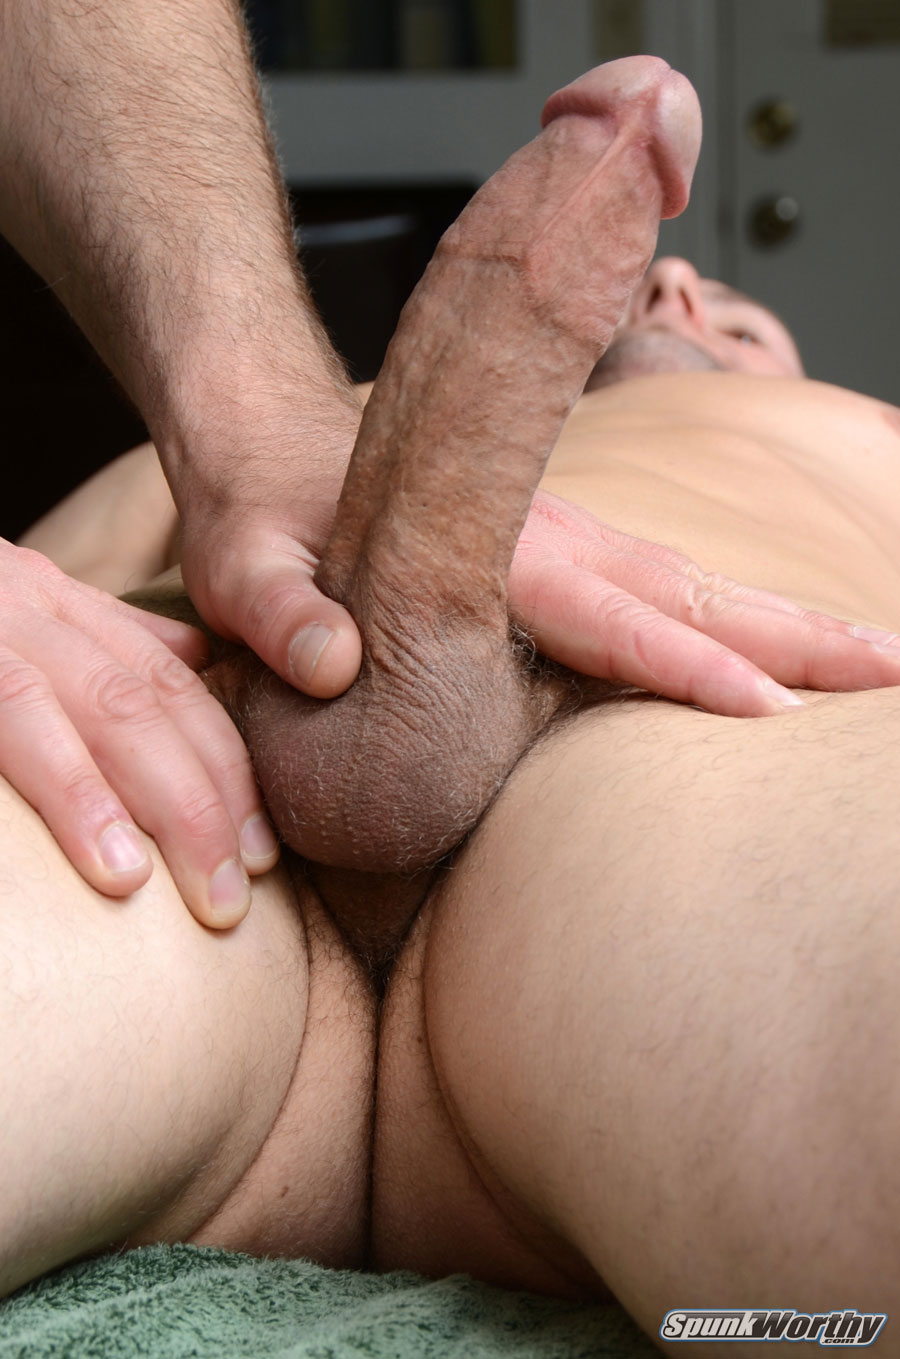 SpunkWorthy Tommy Straight Guys First Blow Job From A Gay Guy Massage Amateur Gay Porn 11